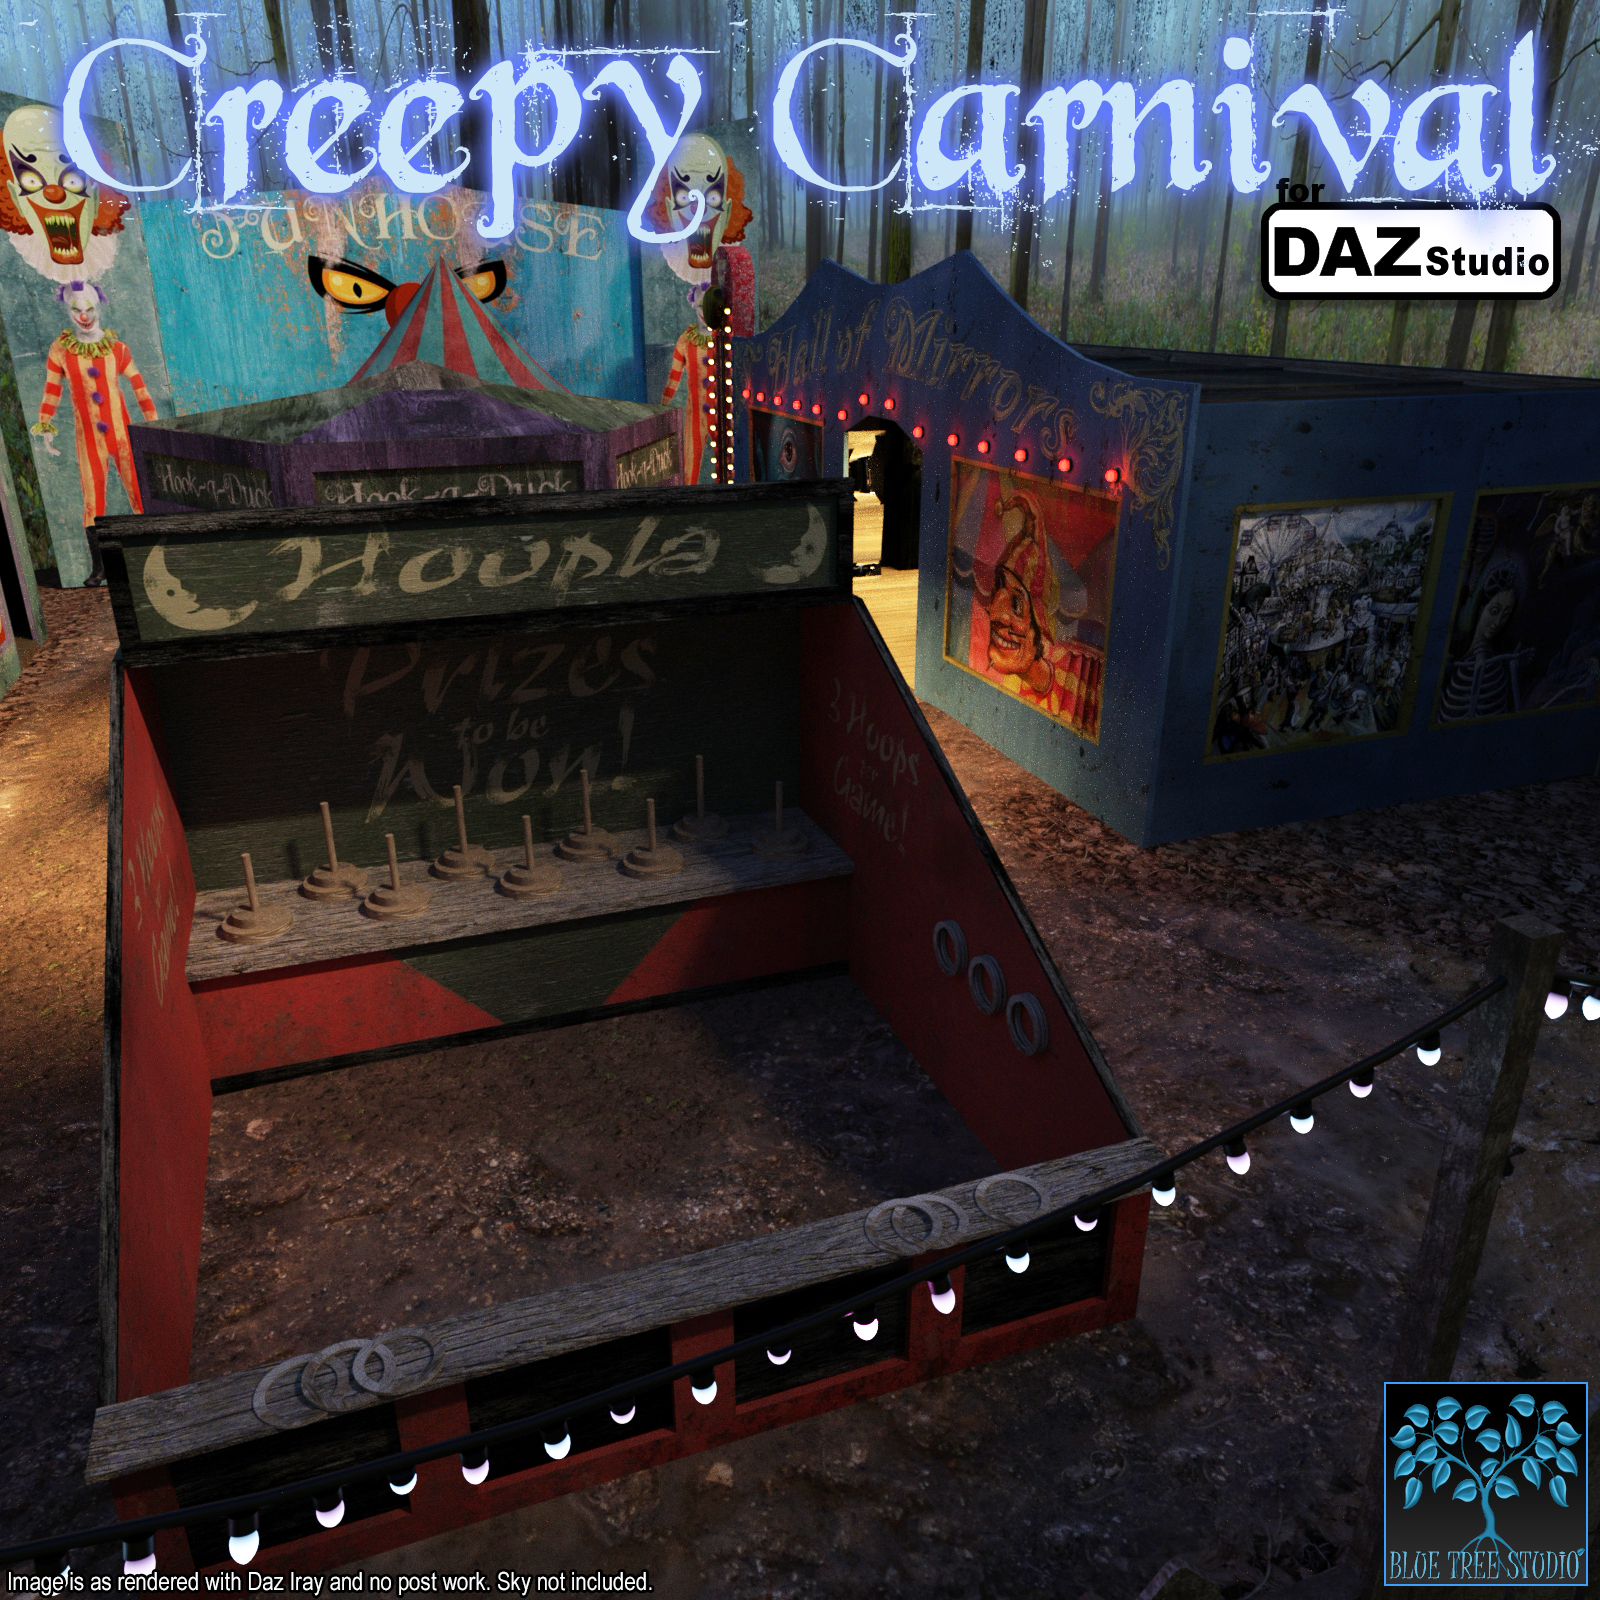 Creepy Carnival for DAZ Studio by BlueTreeStudio